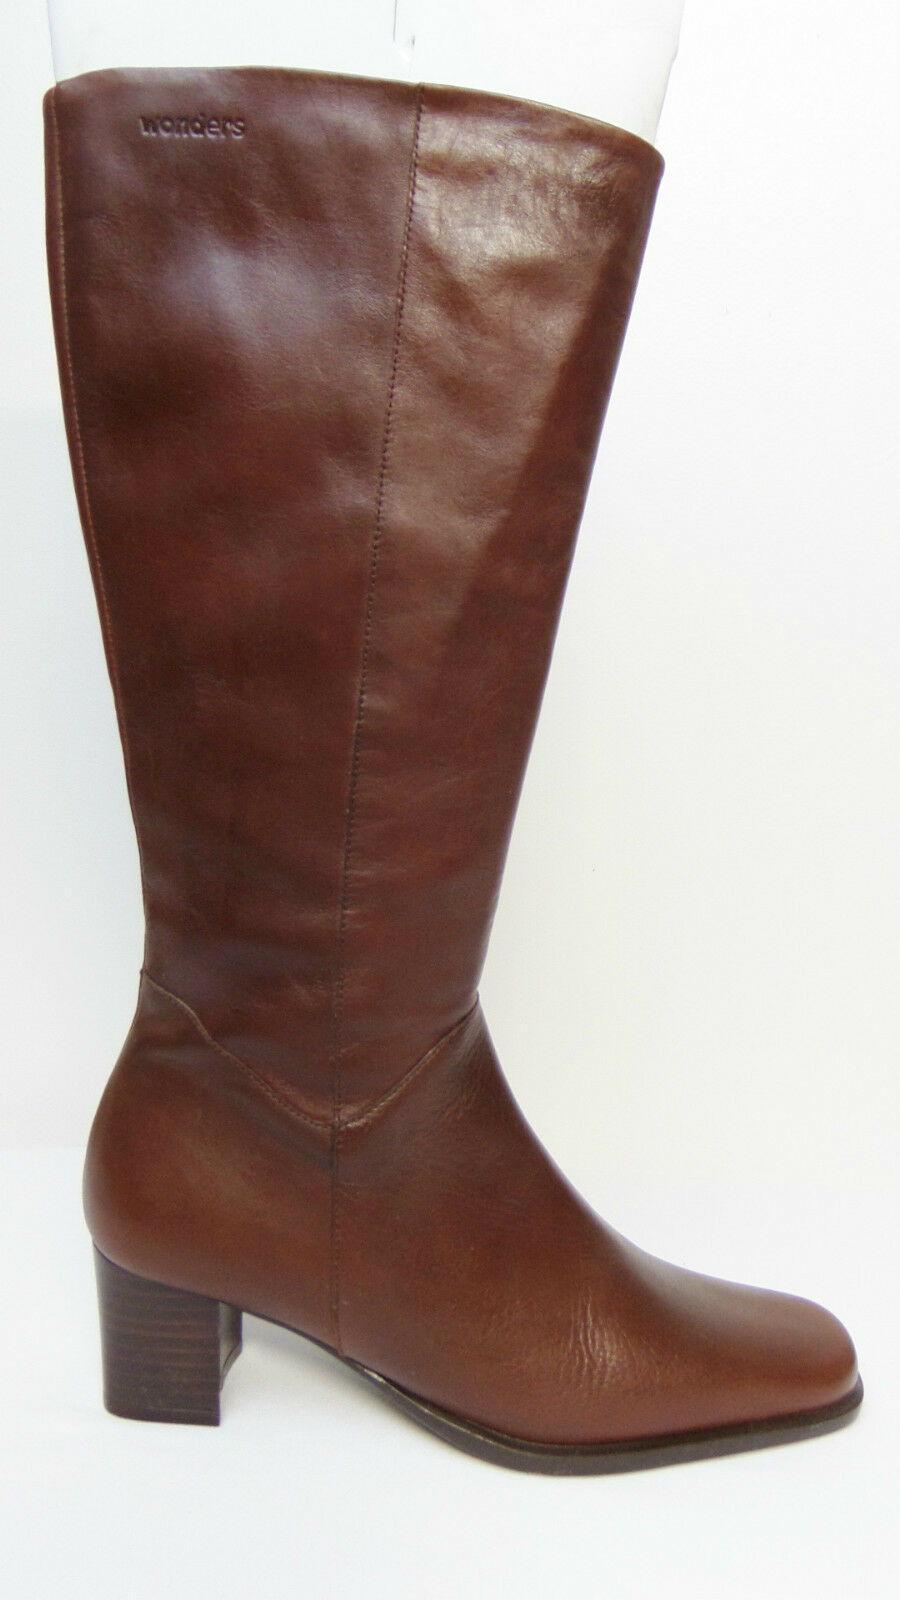 WONDERS Spain - Size 7.5 - Brown Boots Leather Fashion Mid Calf Boots Brown Heel 2